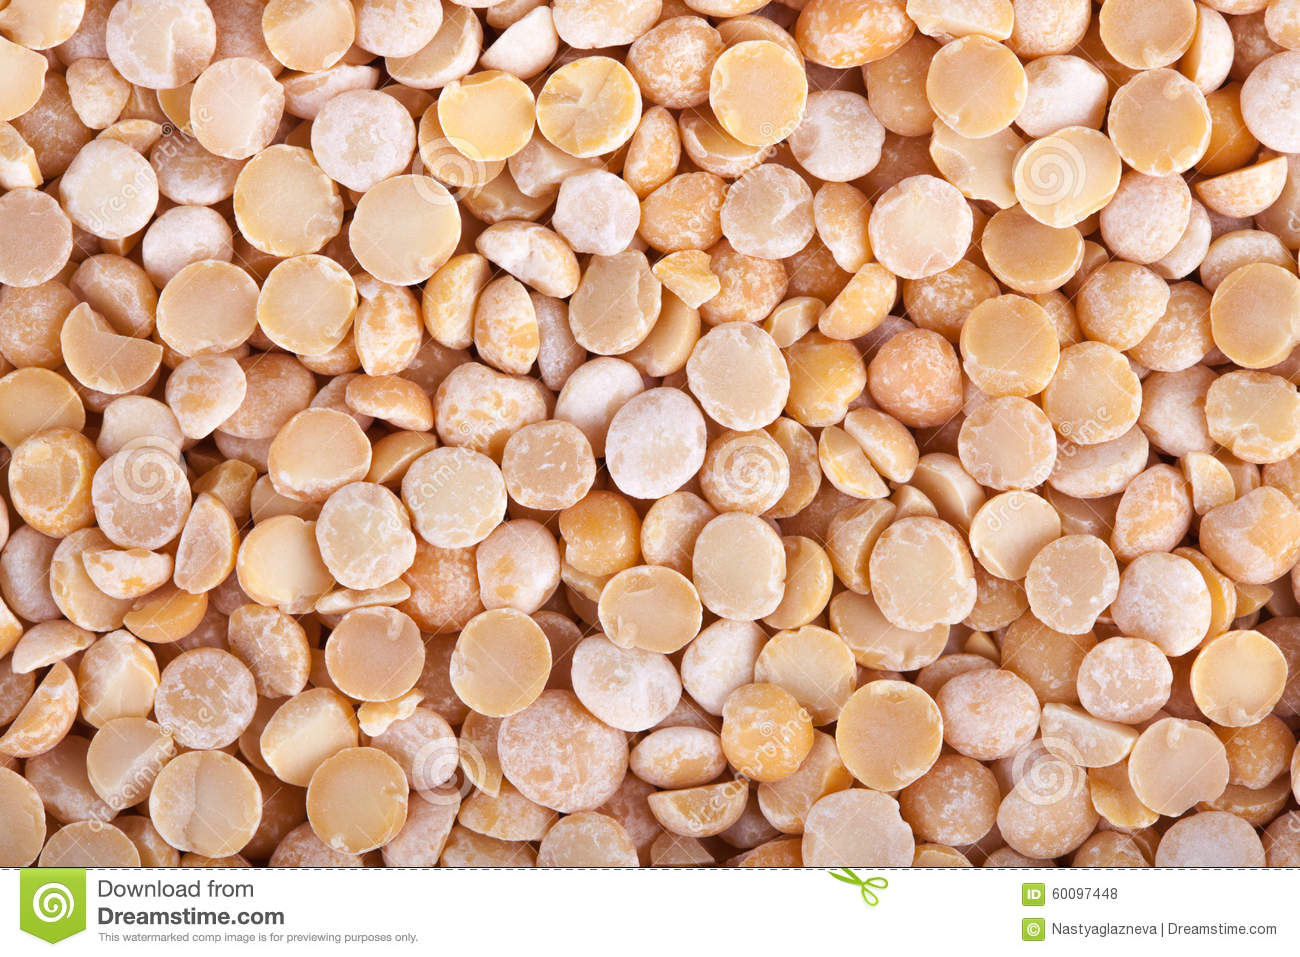 is a dried yellow pea a Pea soup was usually made from dried yellow split peas, not green ones december 1, 2015.